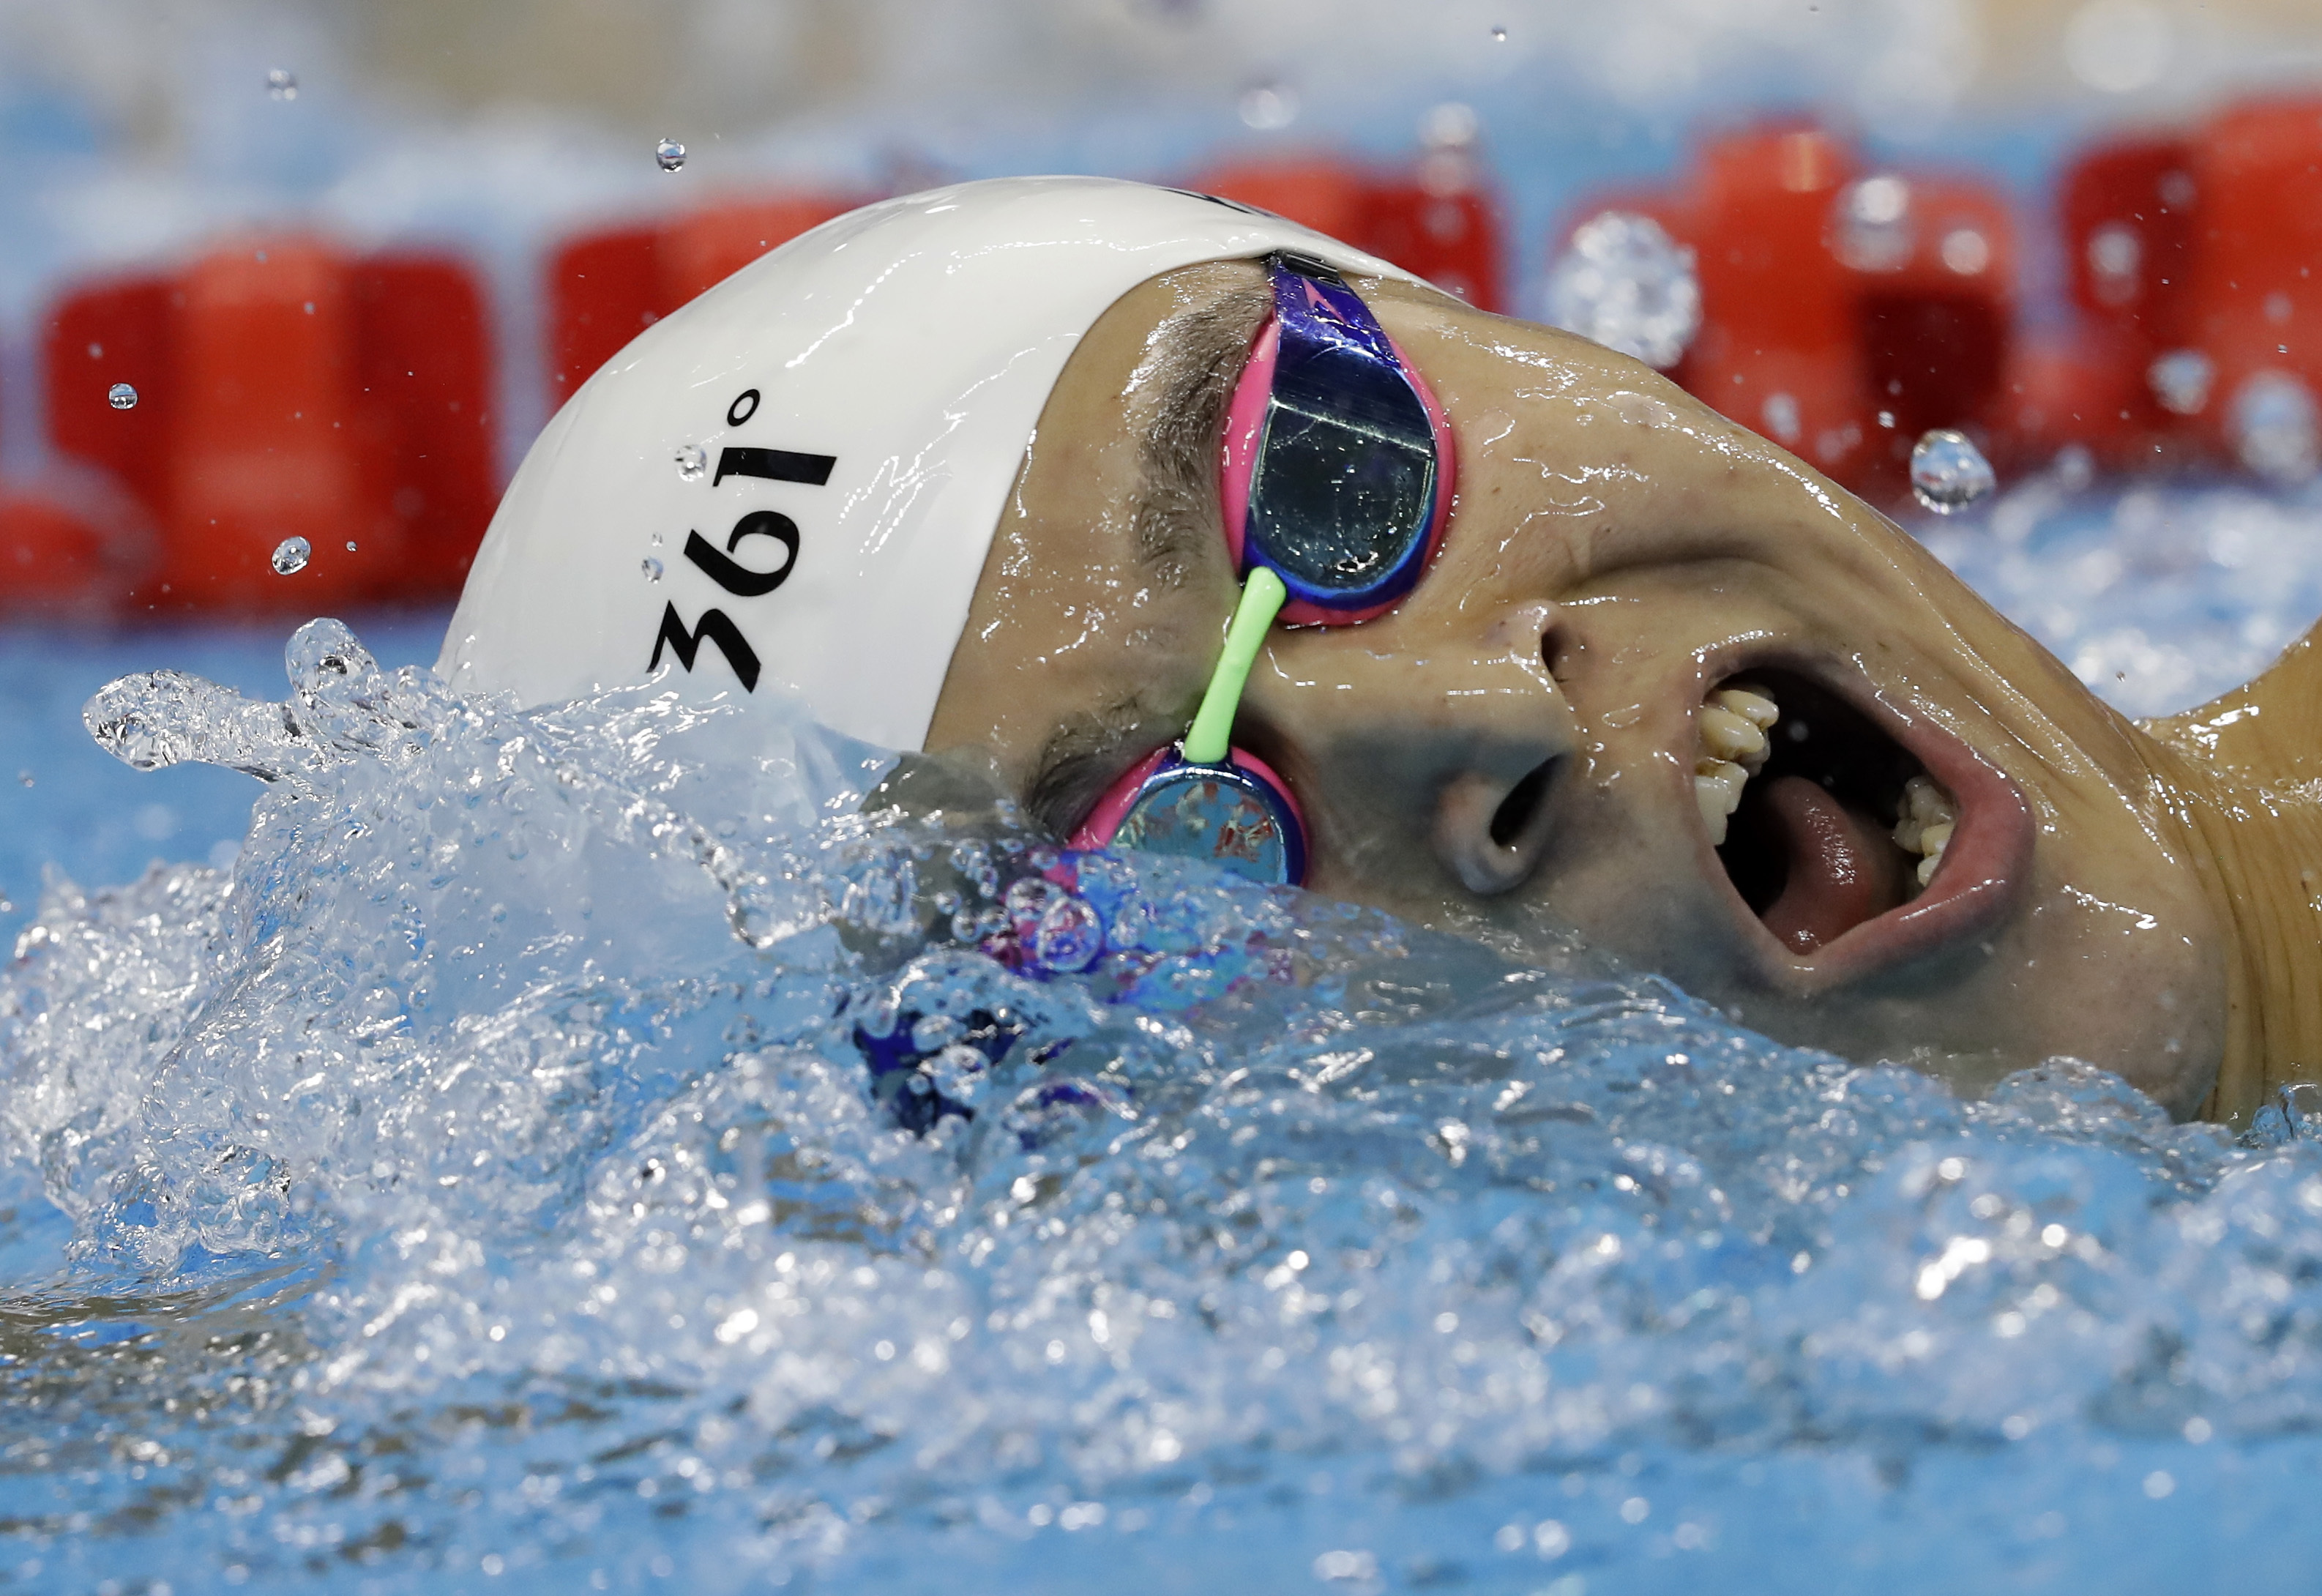 China's Sun Yang competes during a men's 1500-meter freestyle heat during the swimming competitions at the 2016 Summer Olympics, Friday, Aug. 12, 2016, in Rio de Janeiro, Brazil. (AP Photo/Michael Sohn)